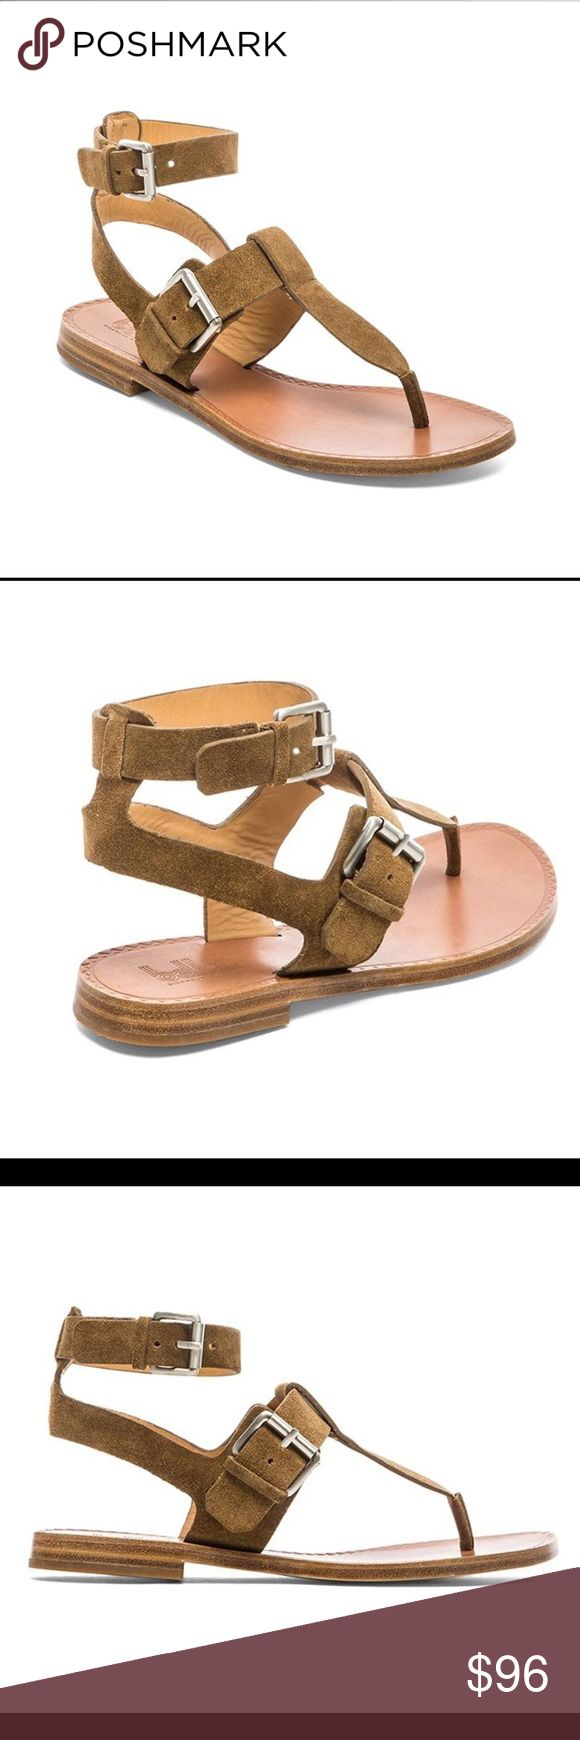 belle by SIGERSON MORRISON SANDALS Fabulous suede and letter sandals with double buckle closure. They are so well made and will last you forever. I have several pairs and love them!!! Save $100.00 on this sold out sandals! Belle by Sigerson Morrison Shoes Sandals